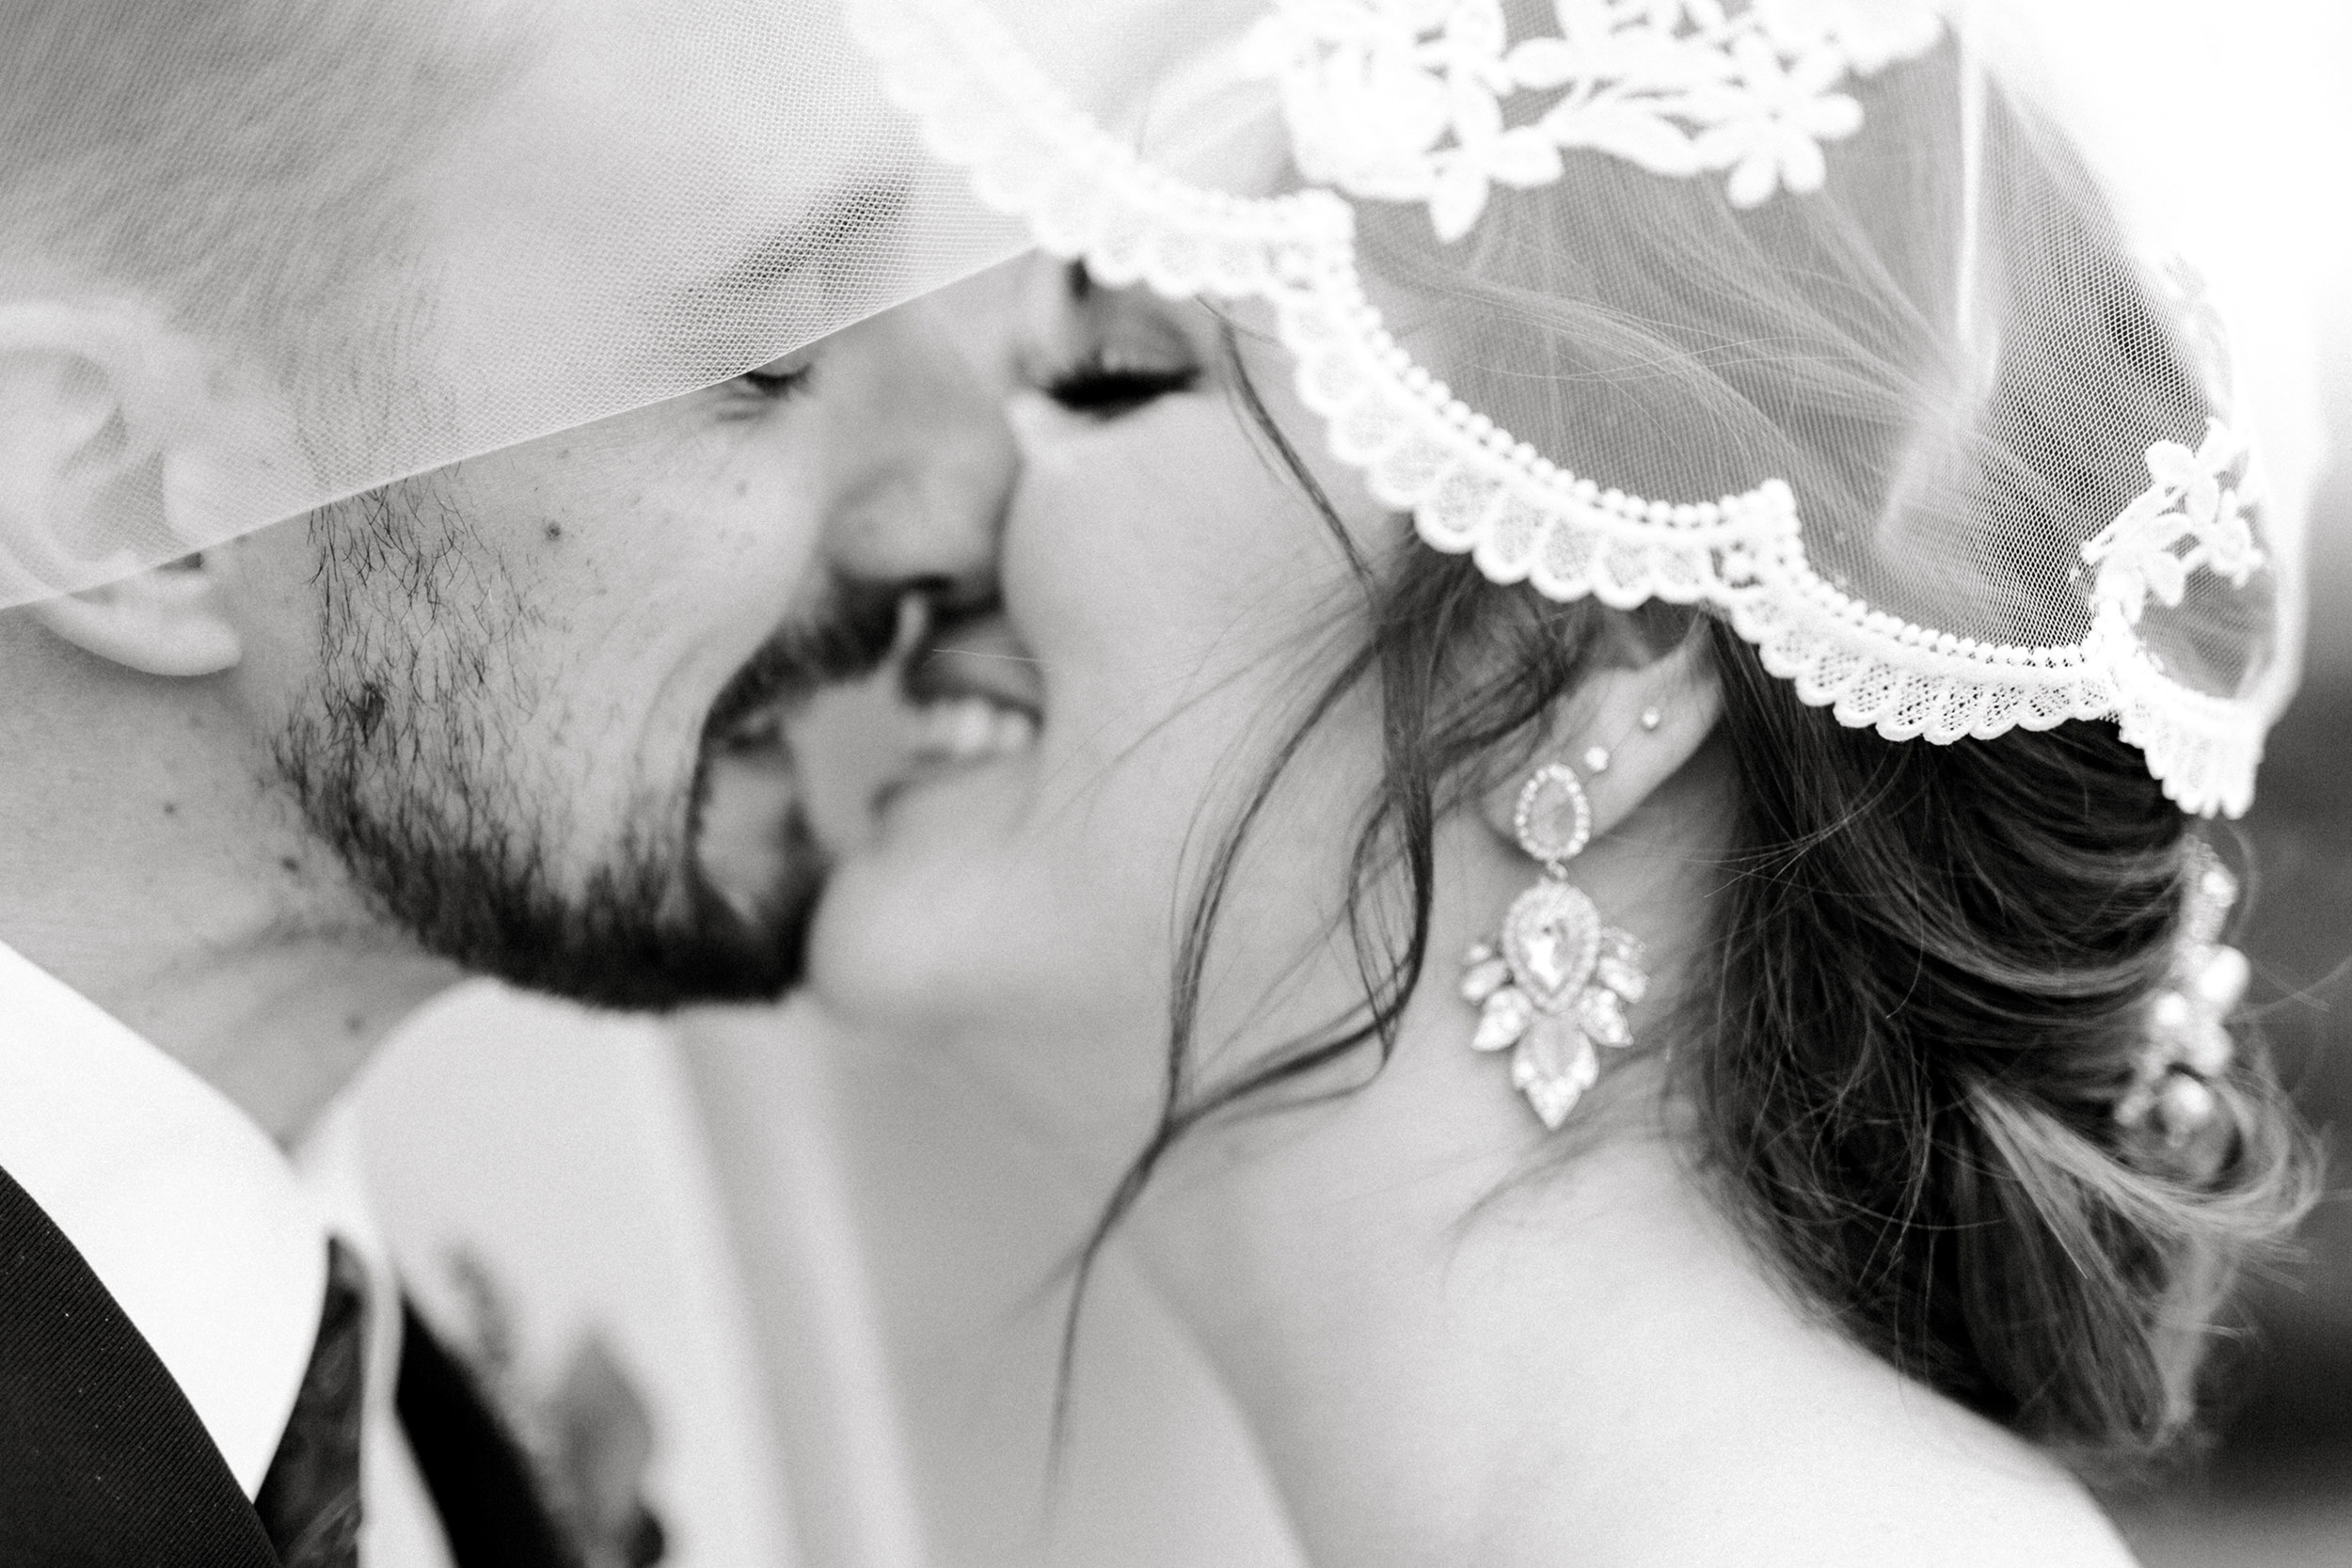 Image courtesy of Daphne and Dean Photography